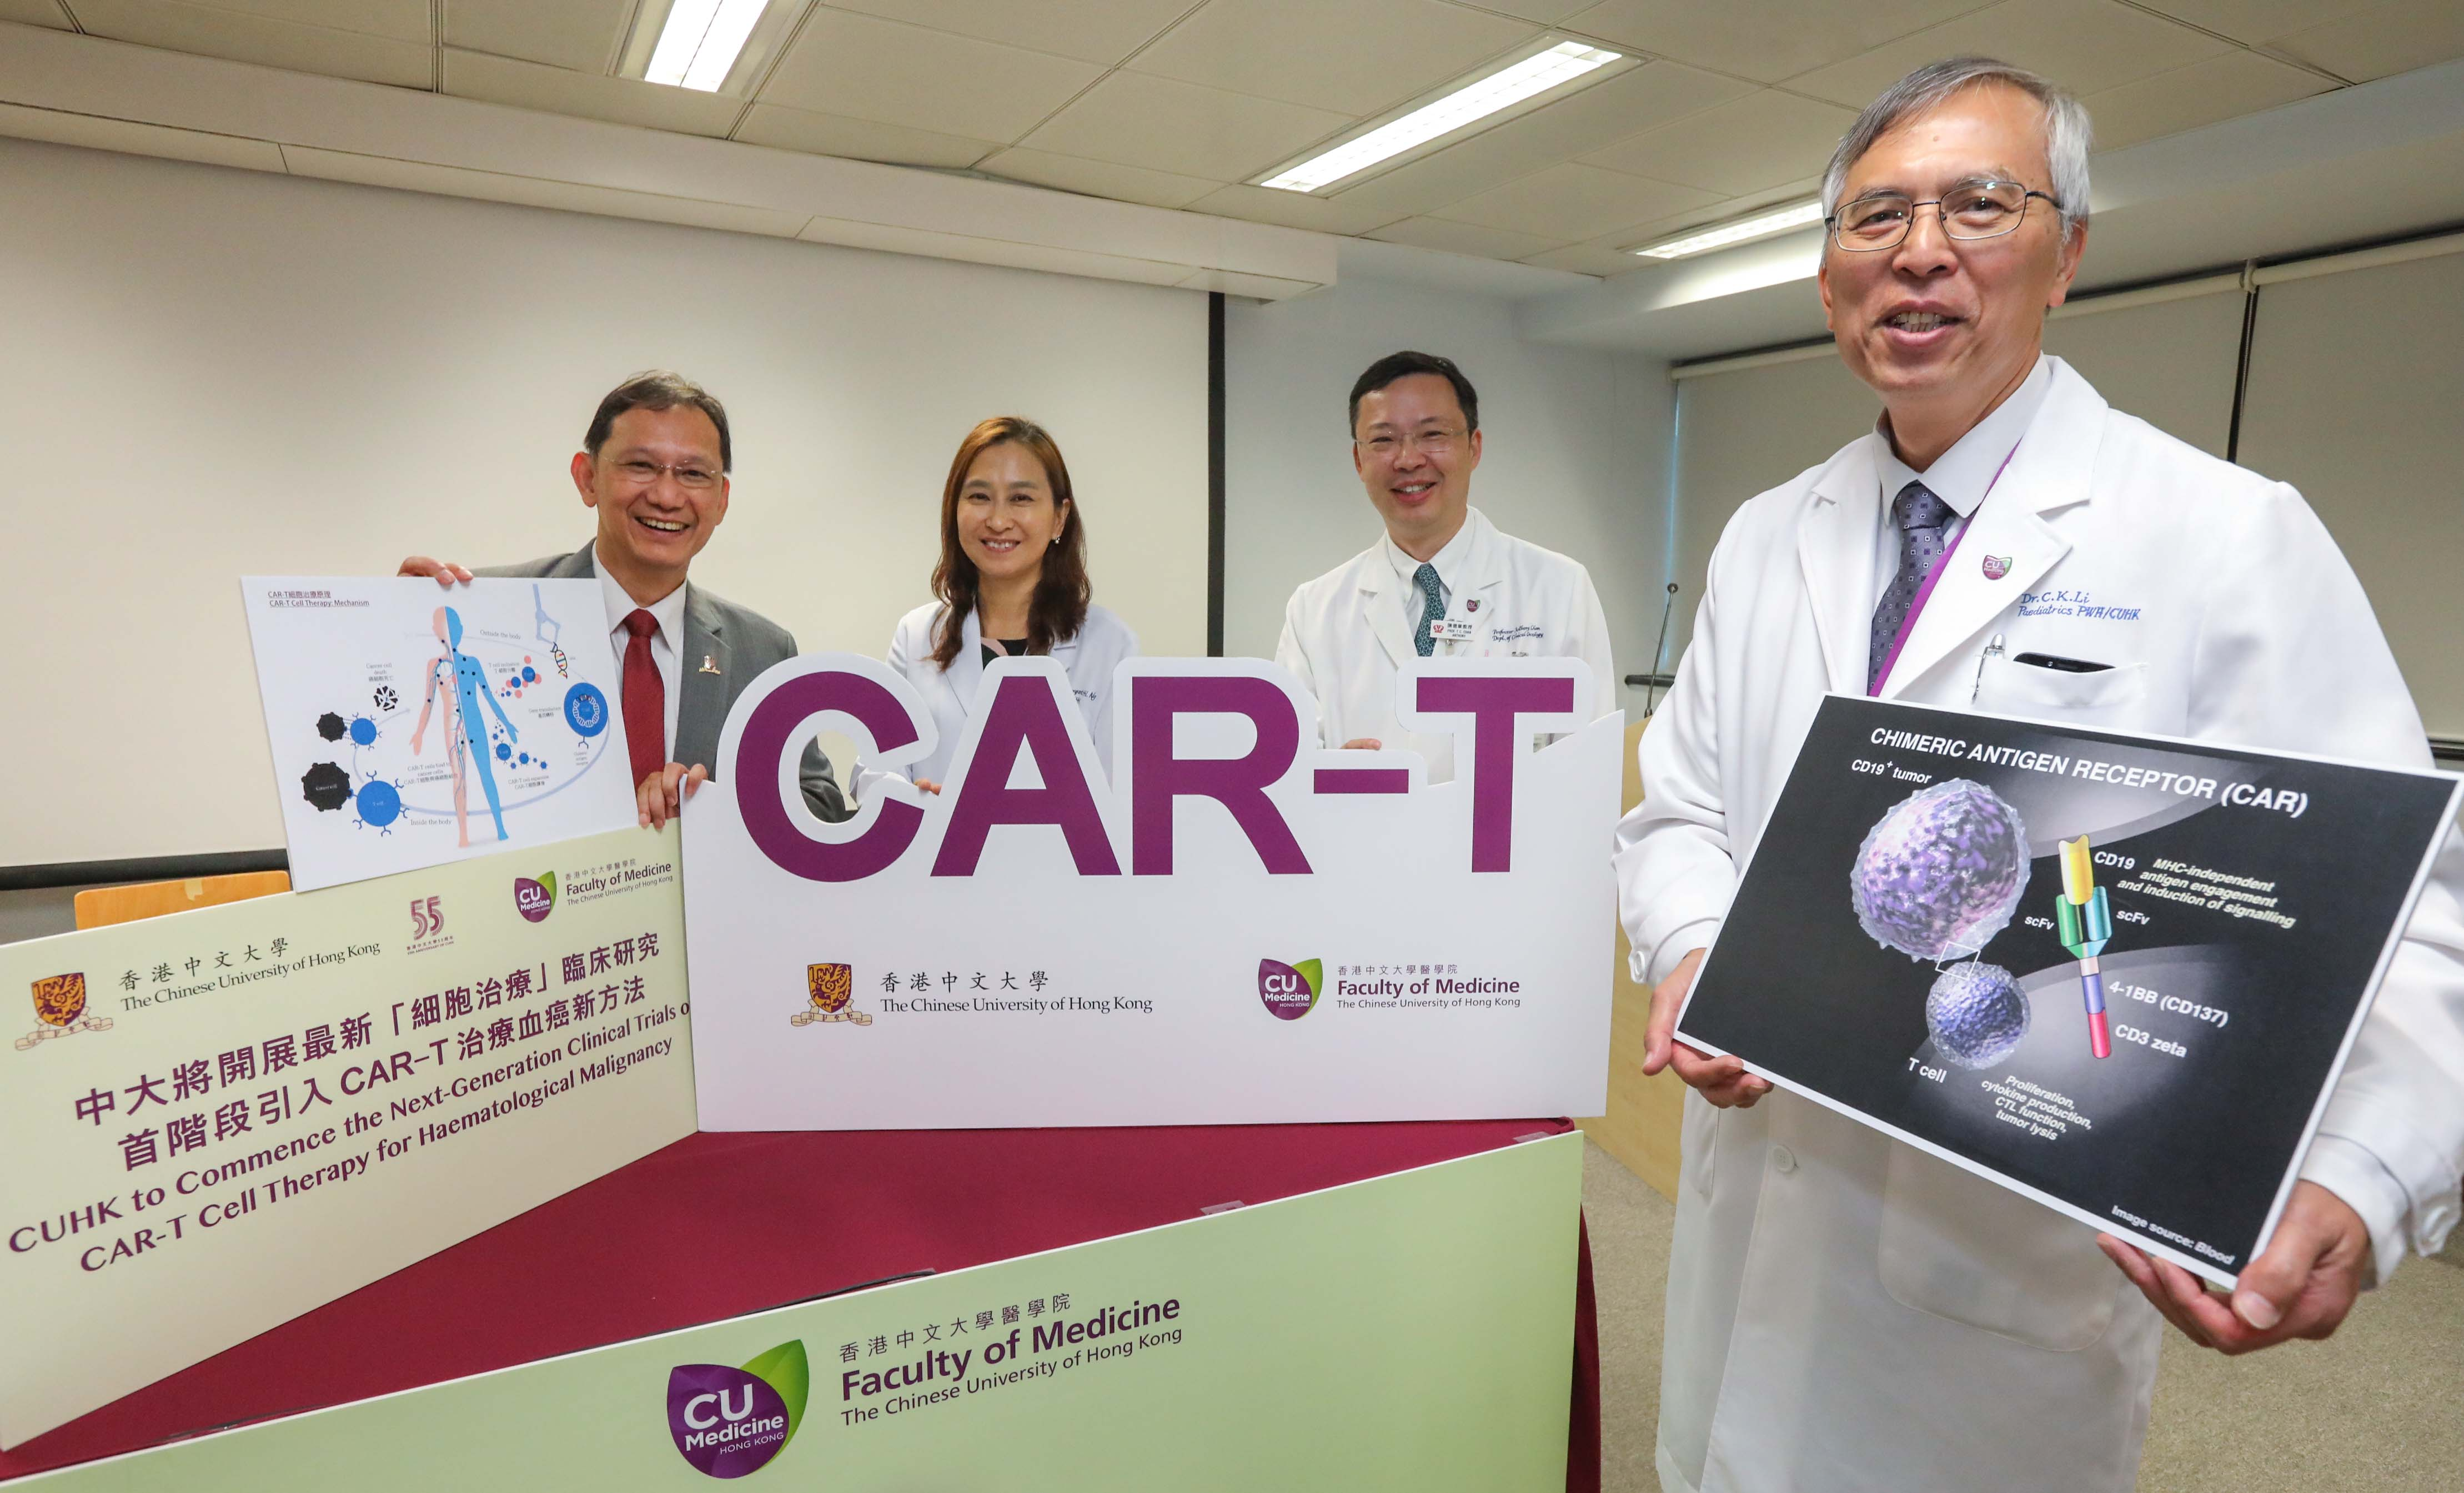 CUHK will commence clinical trials of CAR-T cell therapy, with the first phase targeting patients with haematological malignancy. The plan is to increase the survival rate and prolong overall survival for these patients.